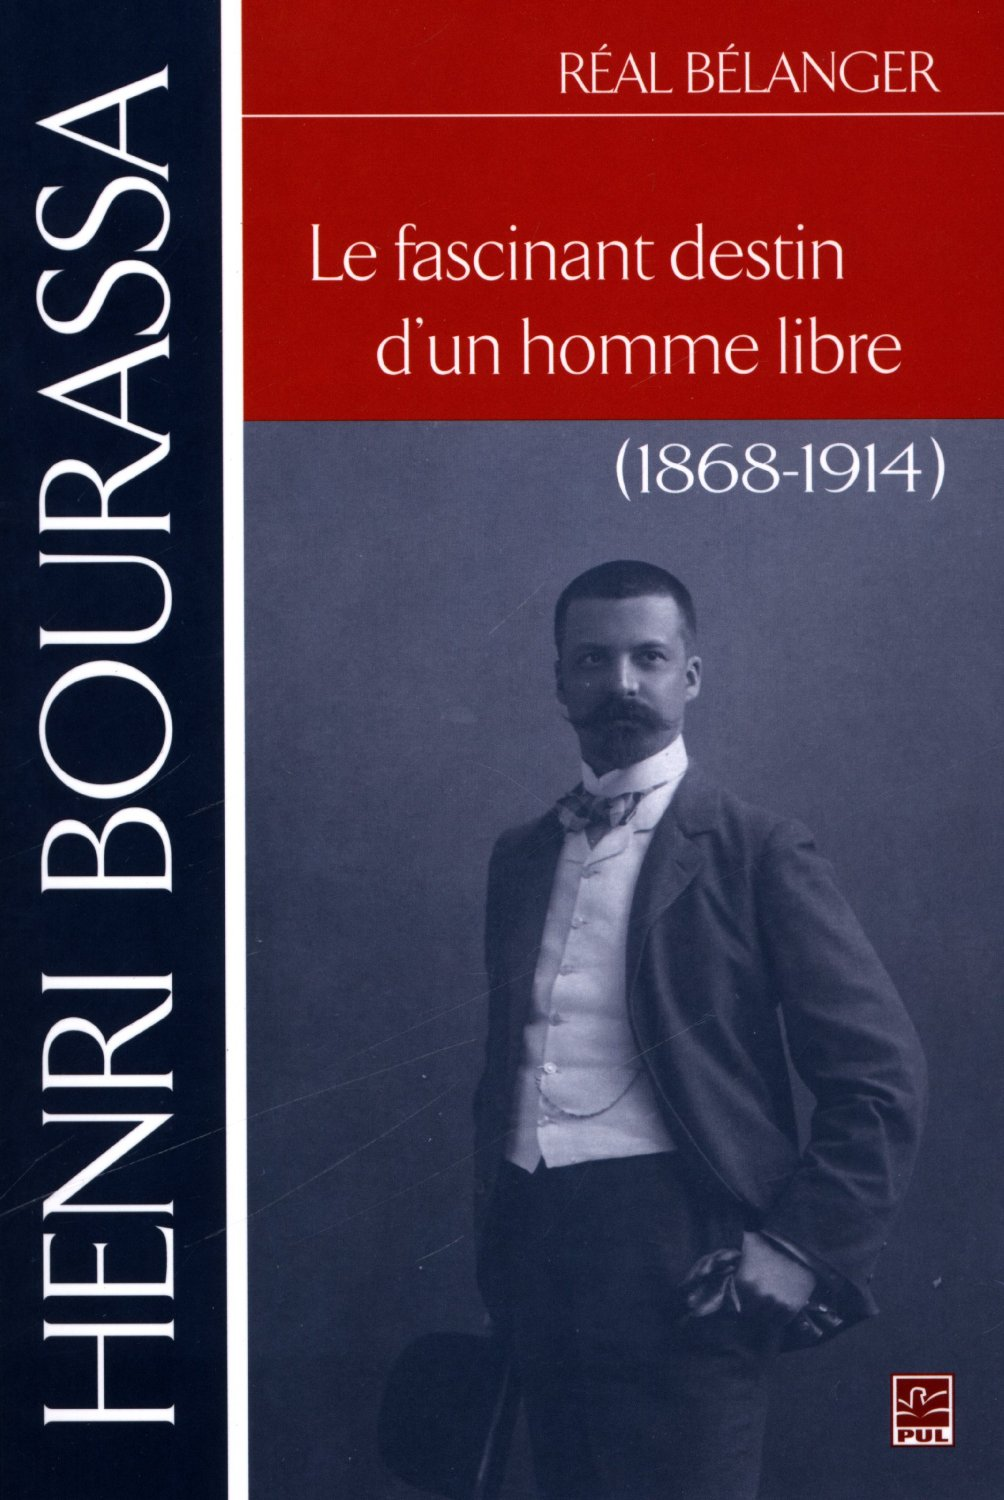 a biography of henri bourassa Joseph-henri-napoleon bourassa facts: the french-canadian nationalist and editor joseph-henri-napoleon bourassa (1868-1952) was one of the leading political figures of quebec, a splendid orator, and the founder and editor in chief of le devoir,  a leading montreal ne.